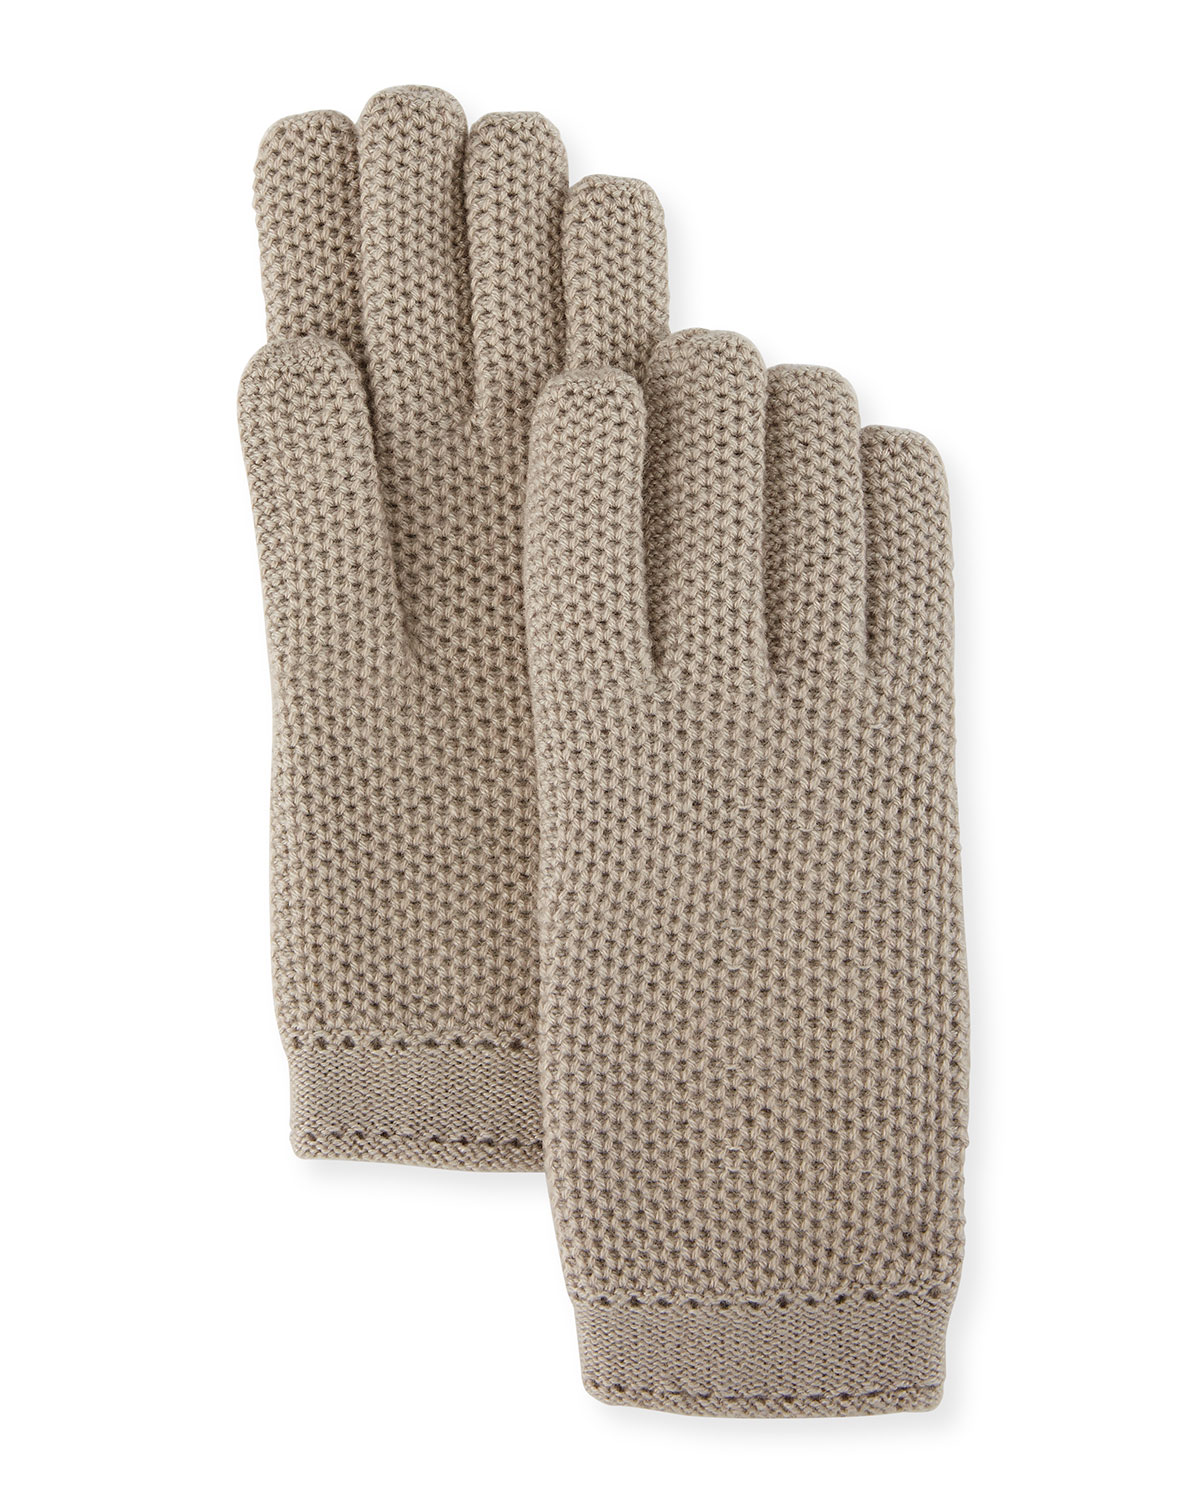 Loro Piana Cashmere Crochet Gloves